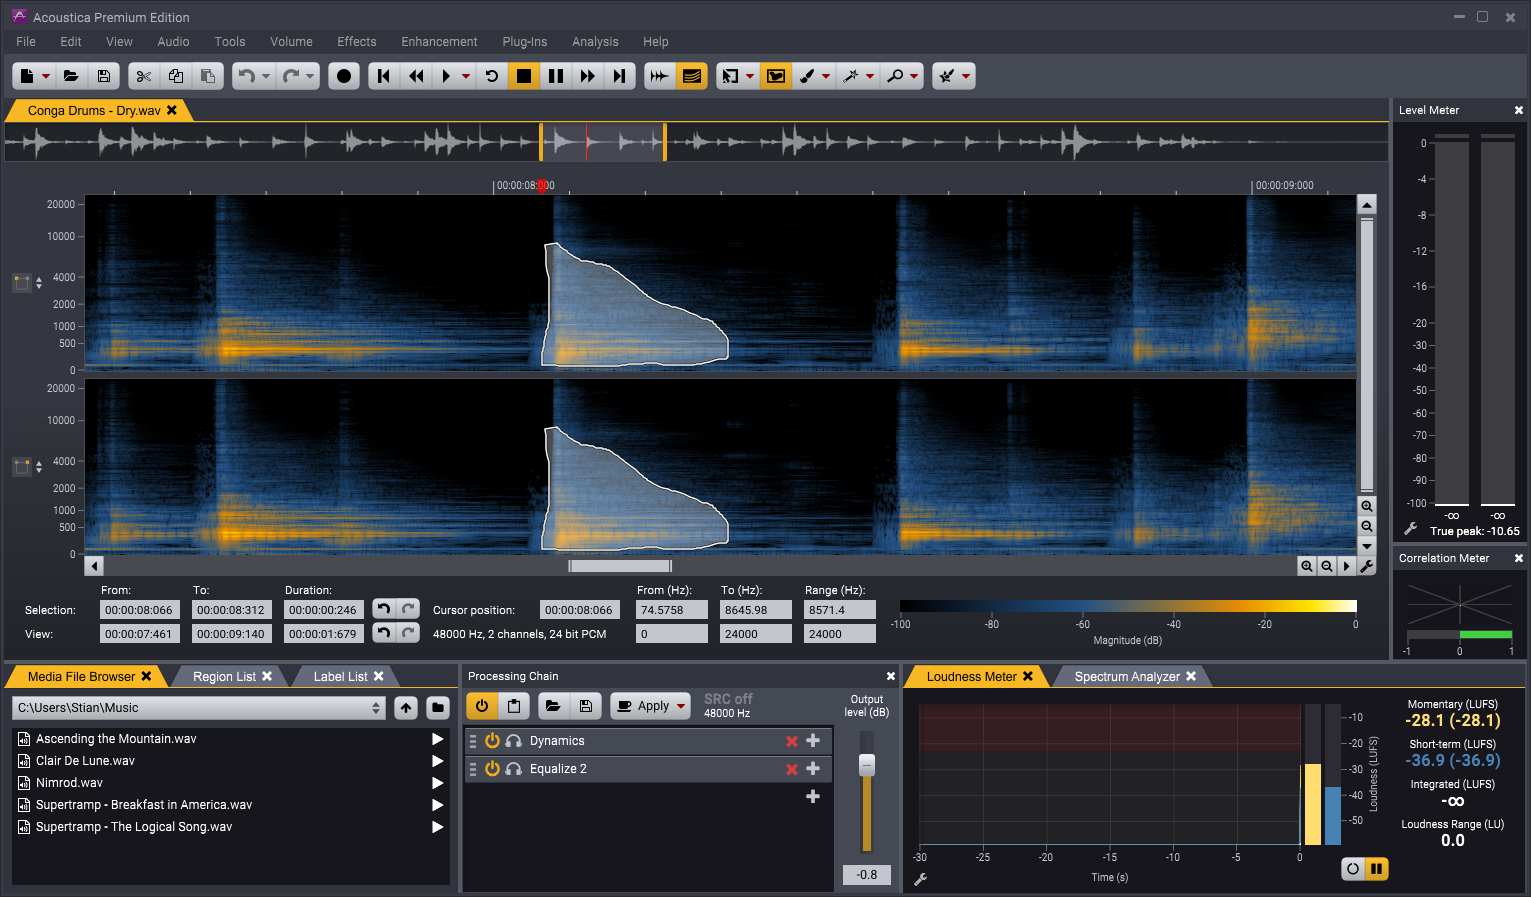 Acoustica Spectral Editor